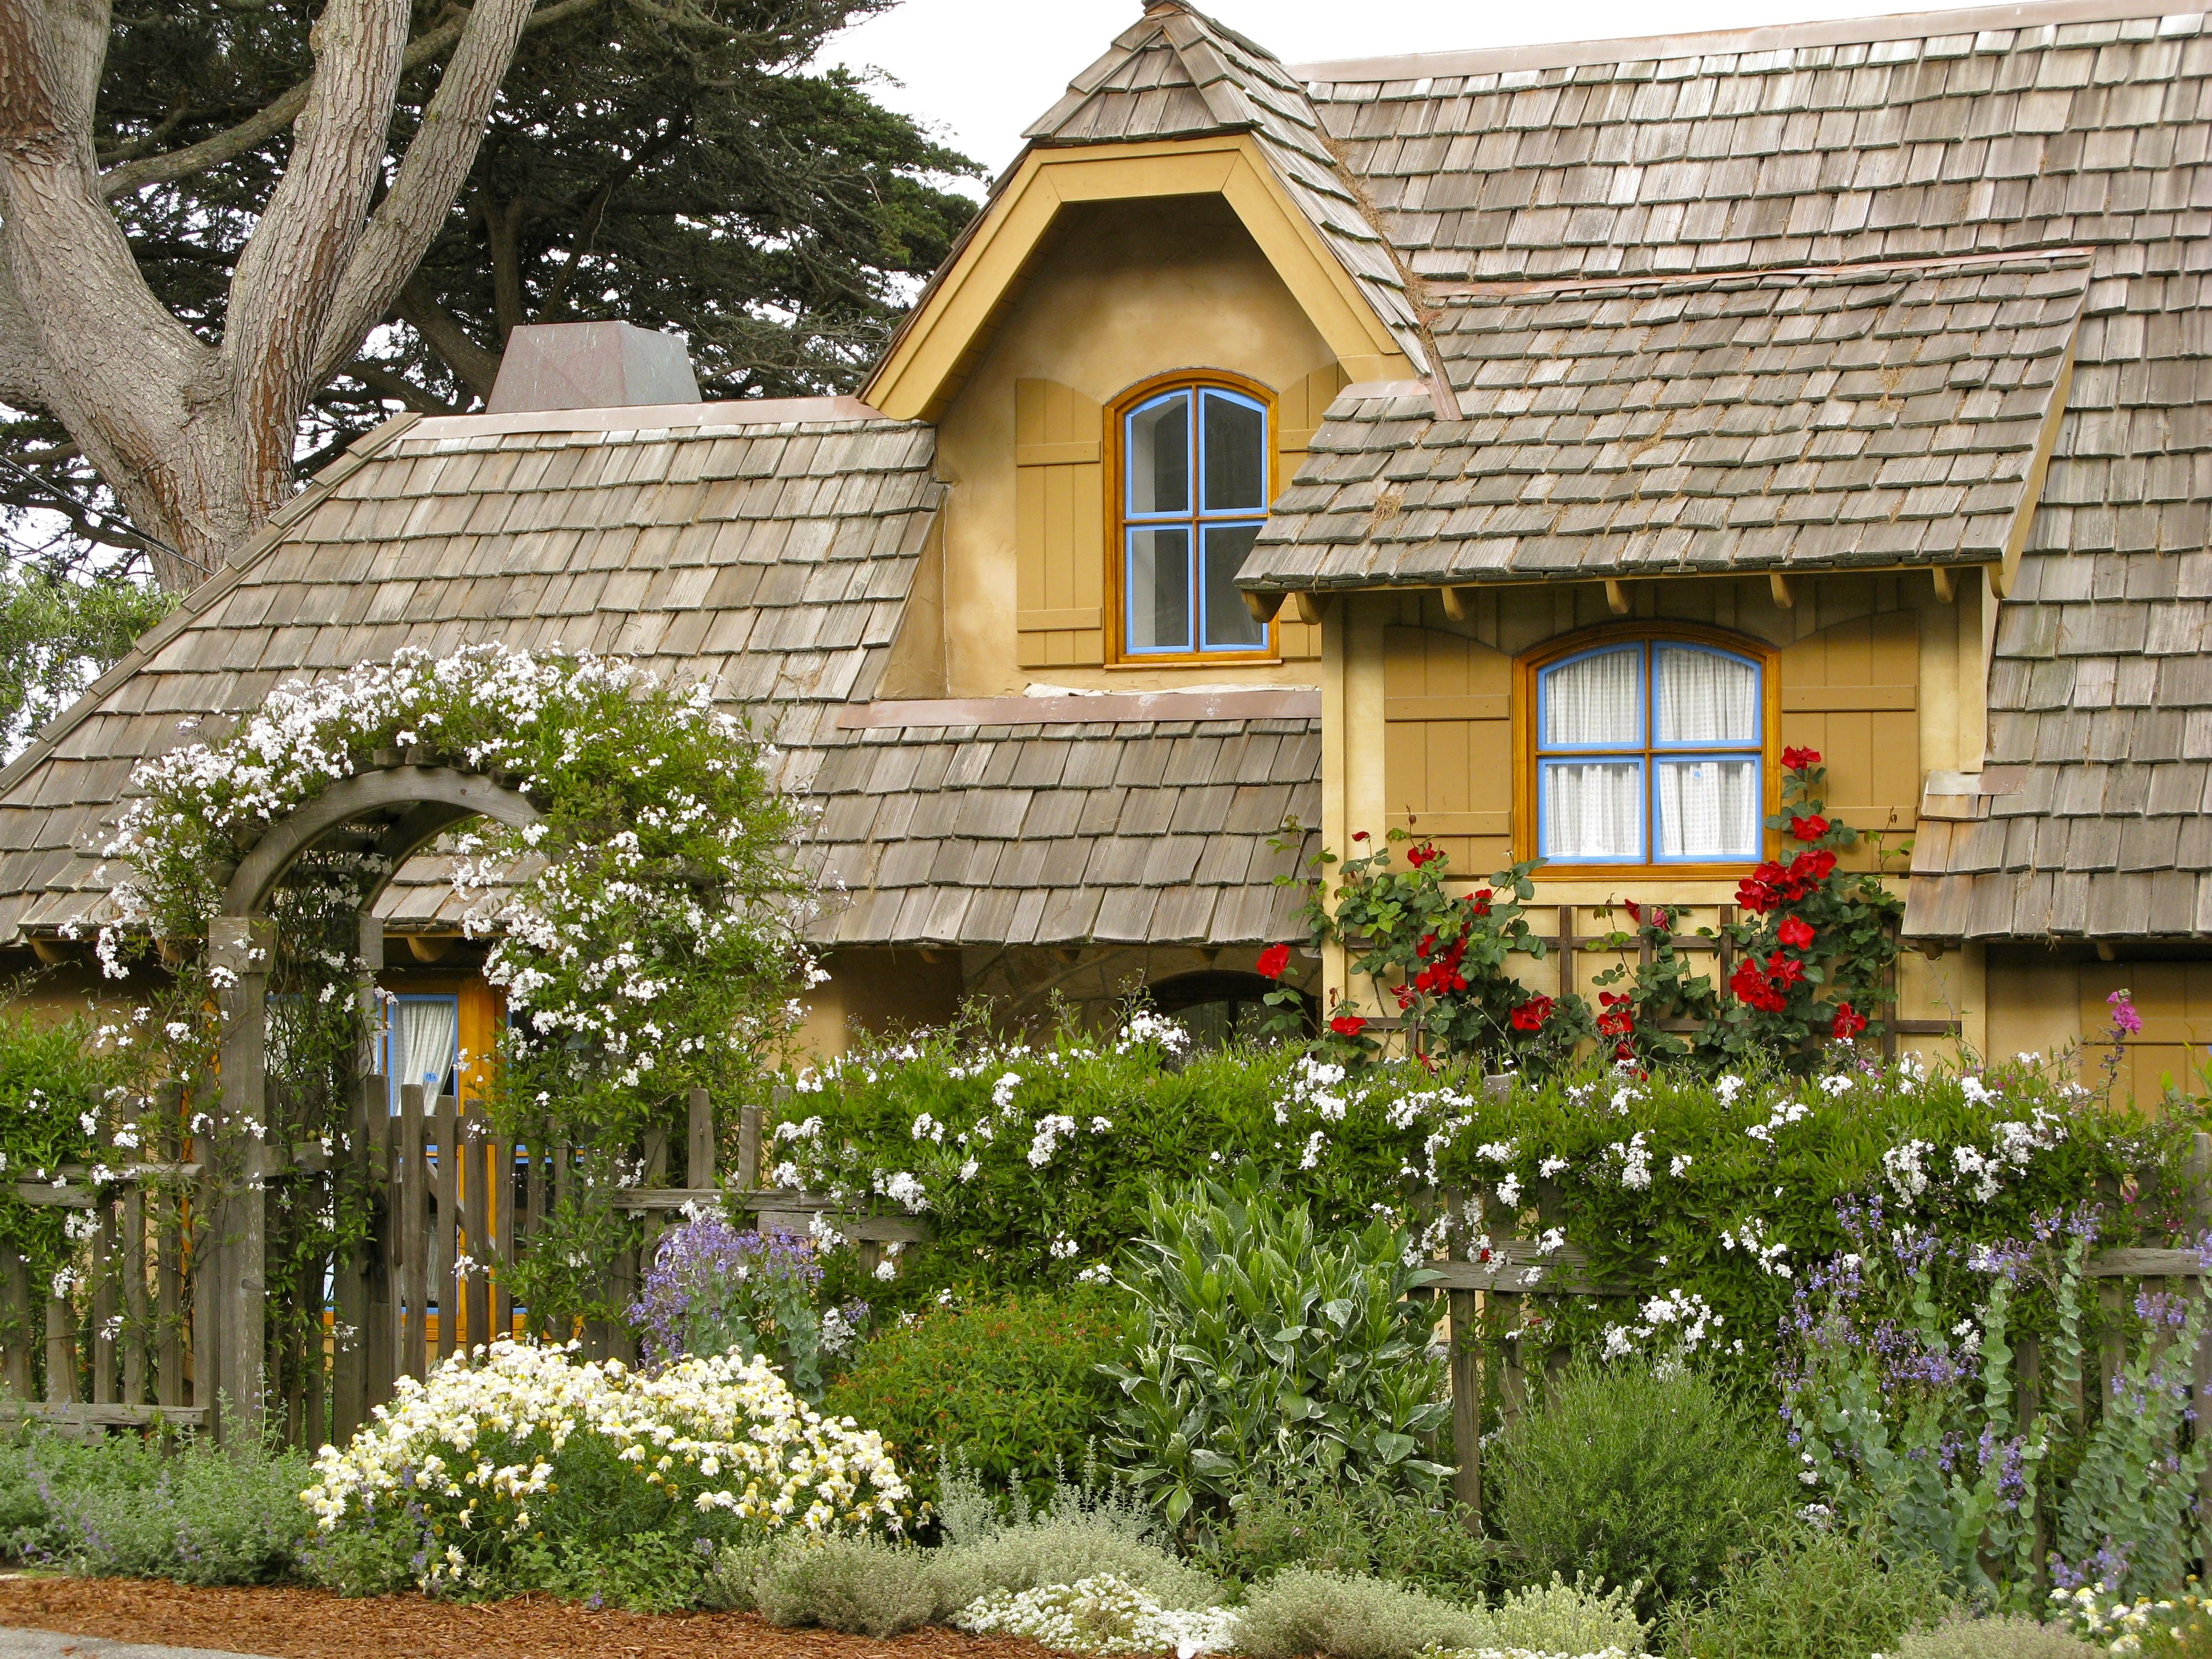 cottage stone pin dormers perfect shutters tree green in home my nantucket spring cottages flowering